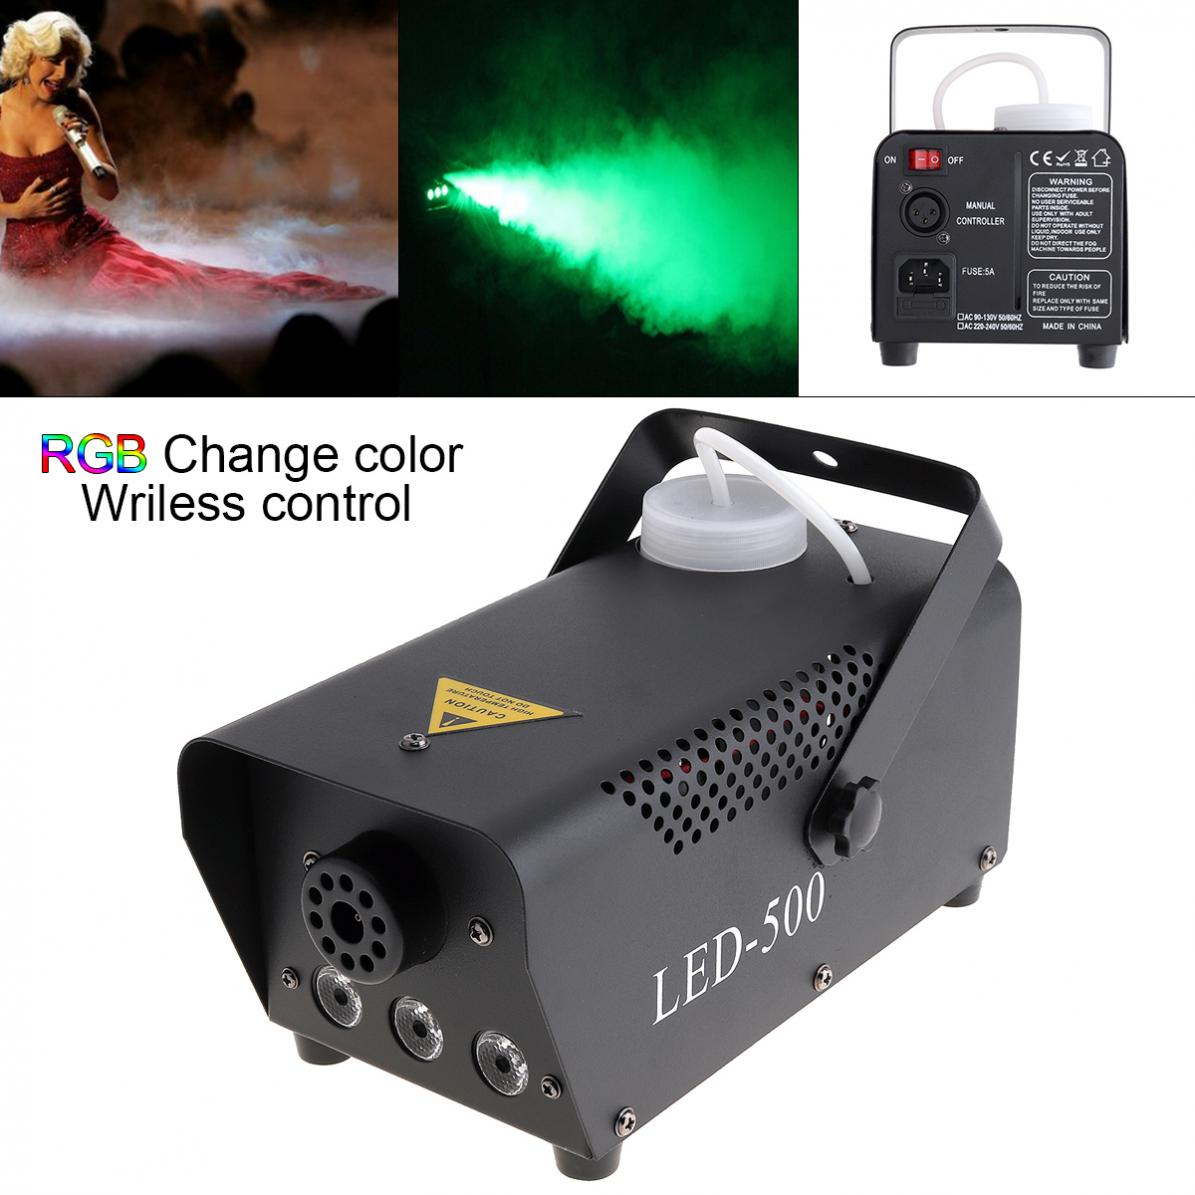 Wireless Remote Control LED 500W Fog Smoke Machine Remote RGB Color Smoke Ejector LED Disco DJ Party Stage Light Smoke Thrower